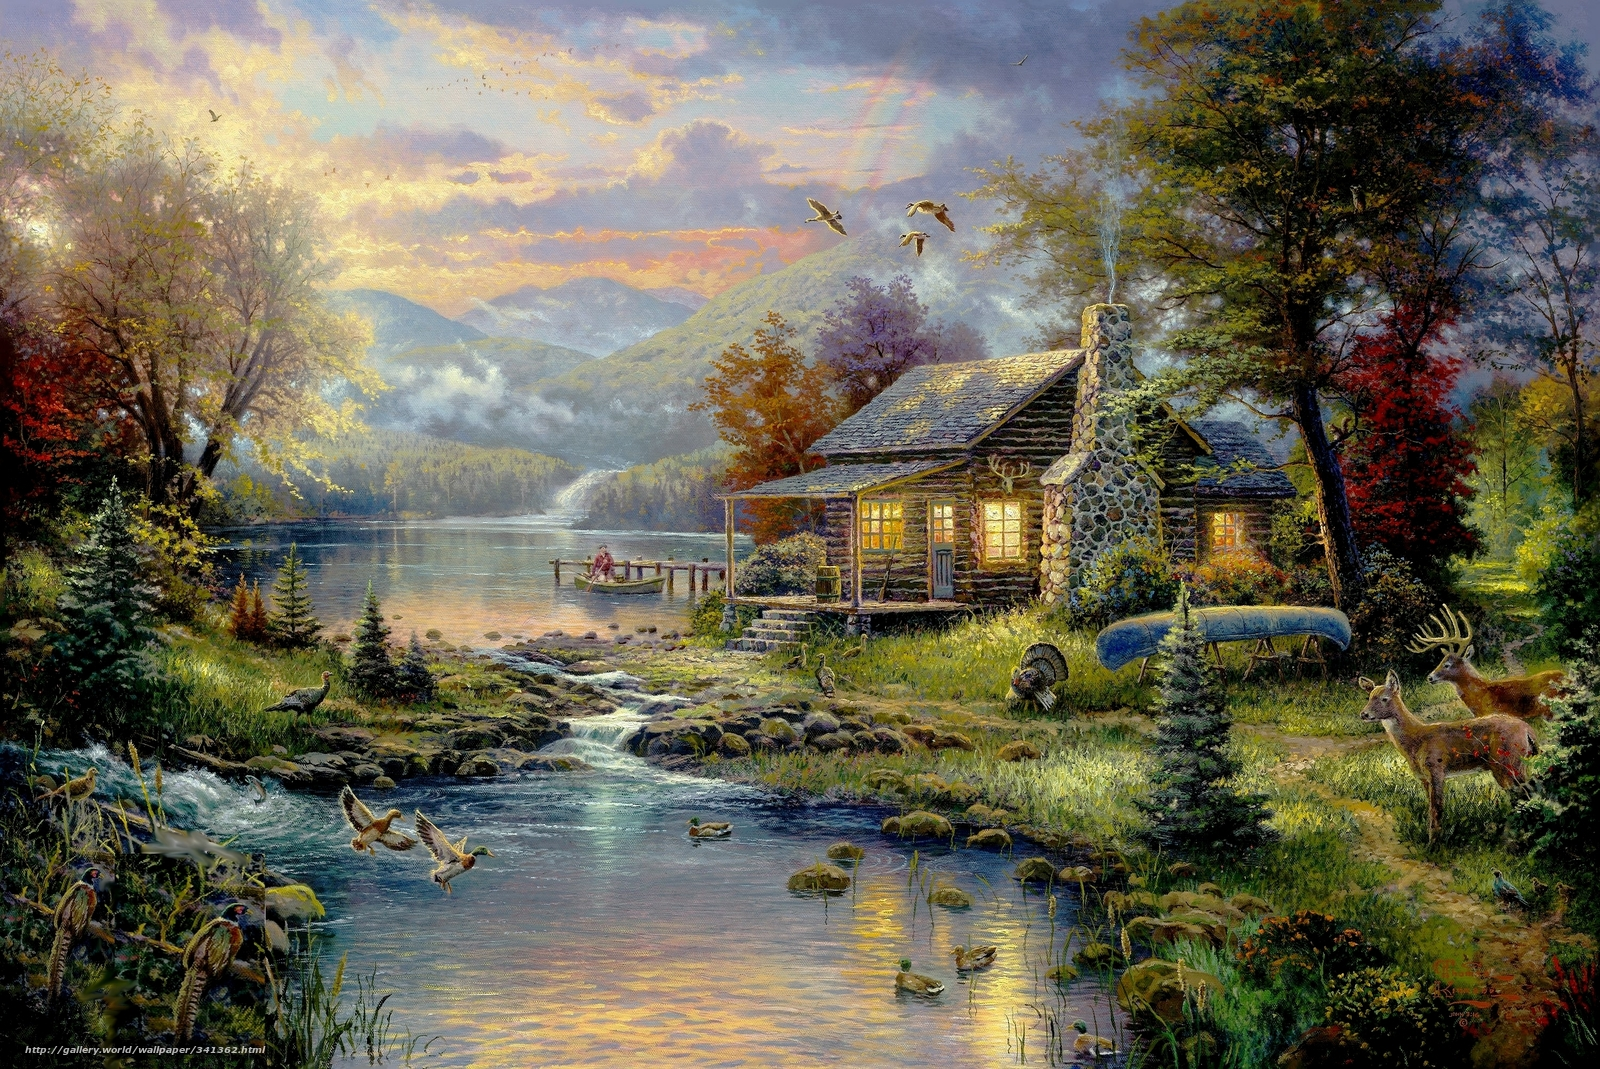 Download wallpaper picture, Thomas Kinkade, painting, paradise free ...